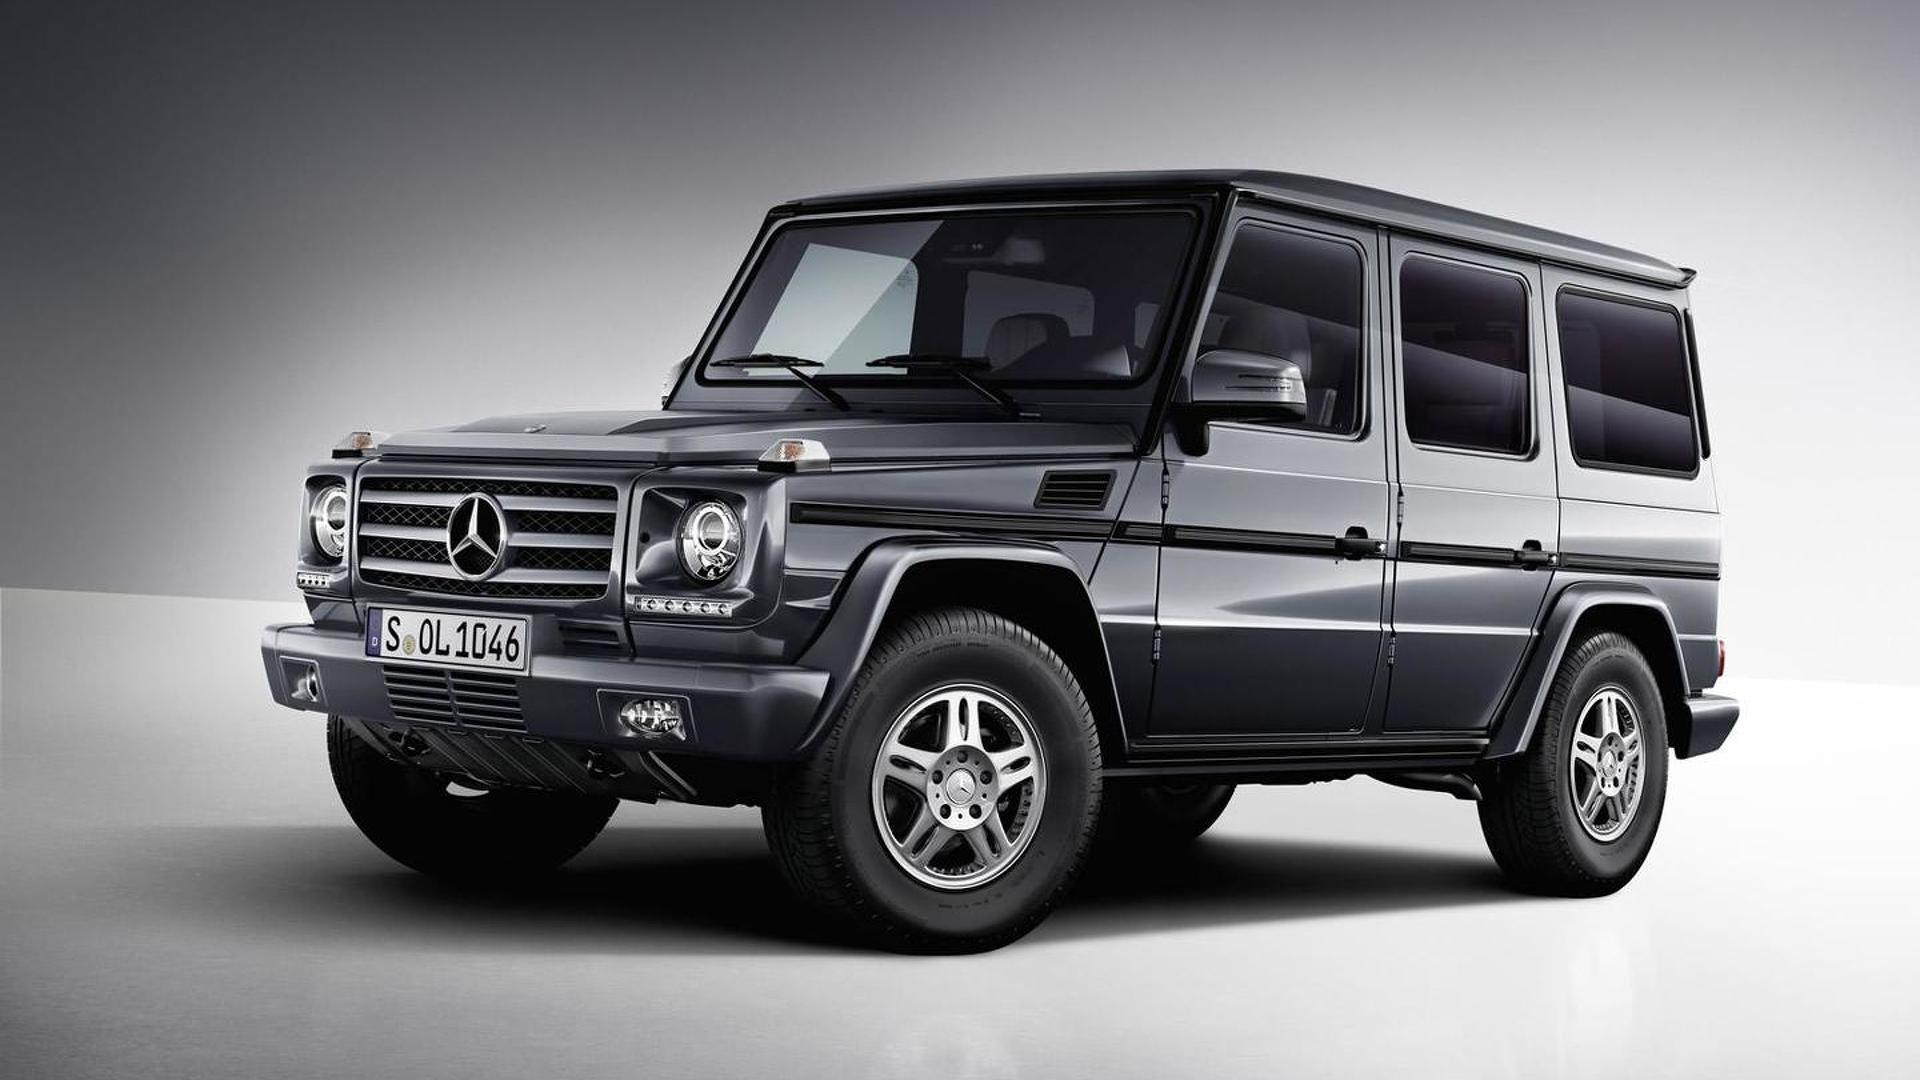 Ongekend Mercedes-Benz G500 reportedly getting twin-turbo V8 4.0 engine UE-44